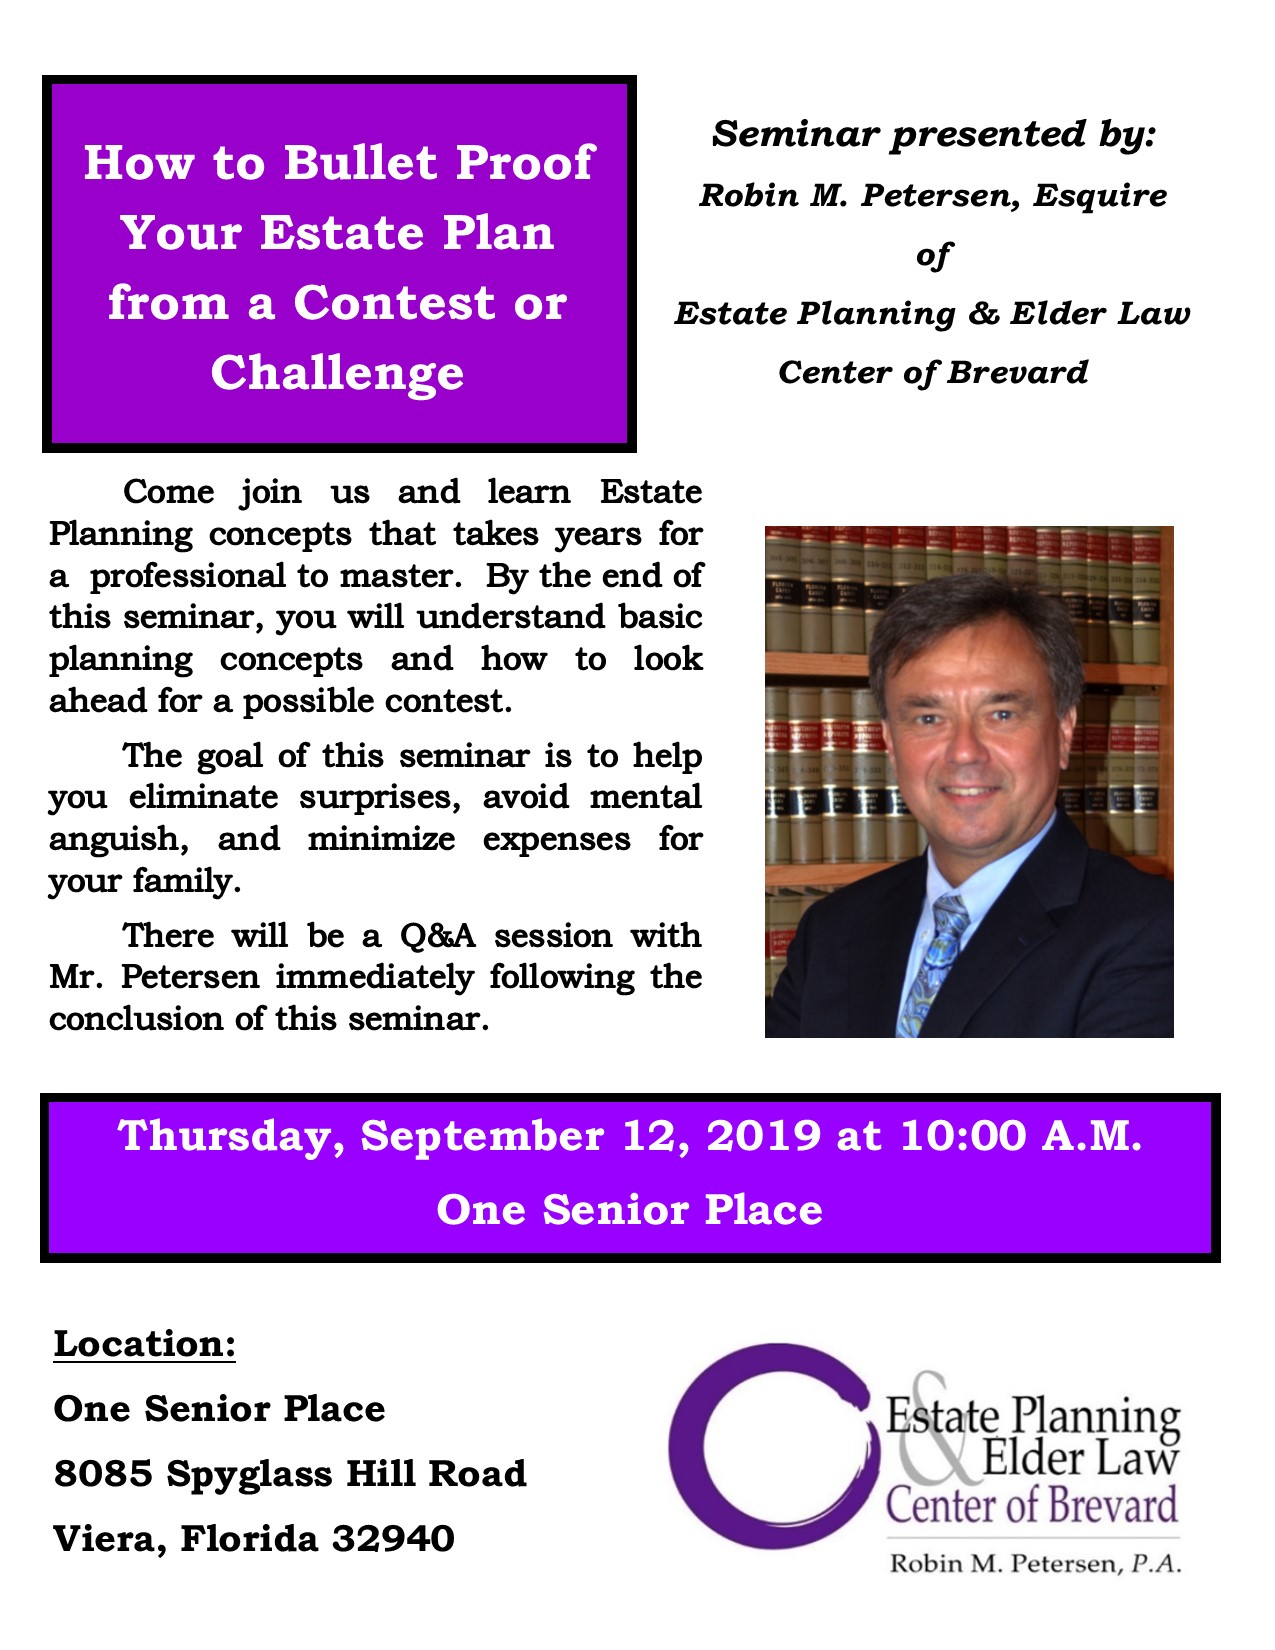 How to Bullet Proof Your Estate Plan from a Contest or Challenge presented by Estate Planning and Elder Law Center of Brevard